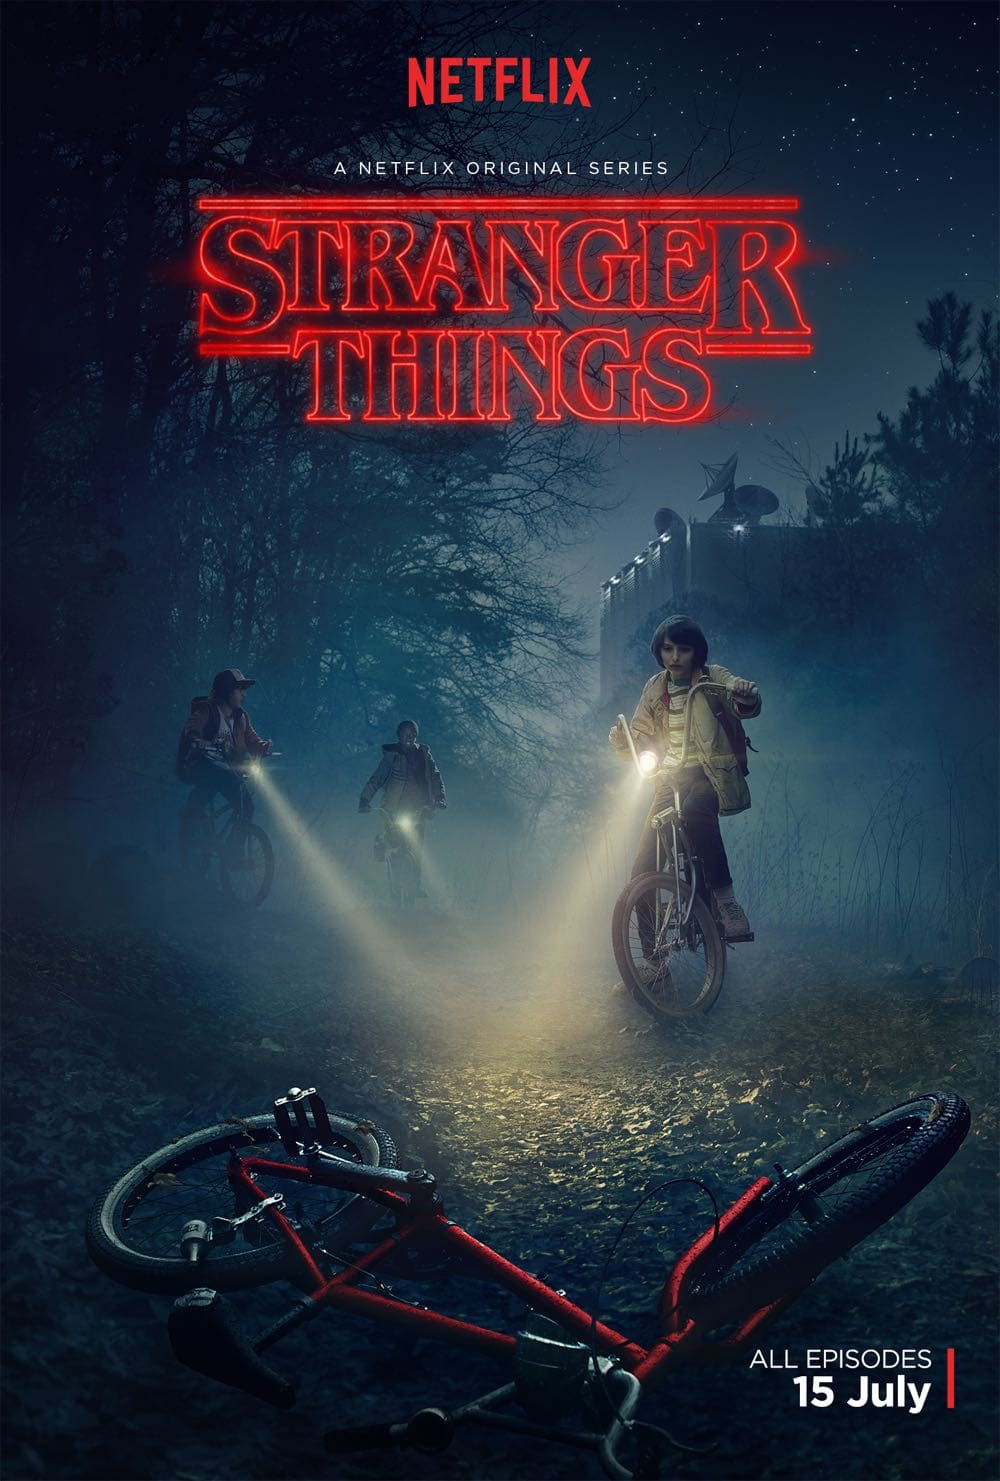 STRANGER THINGS Poster Key Art